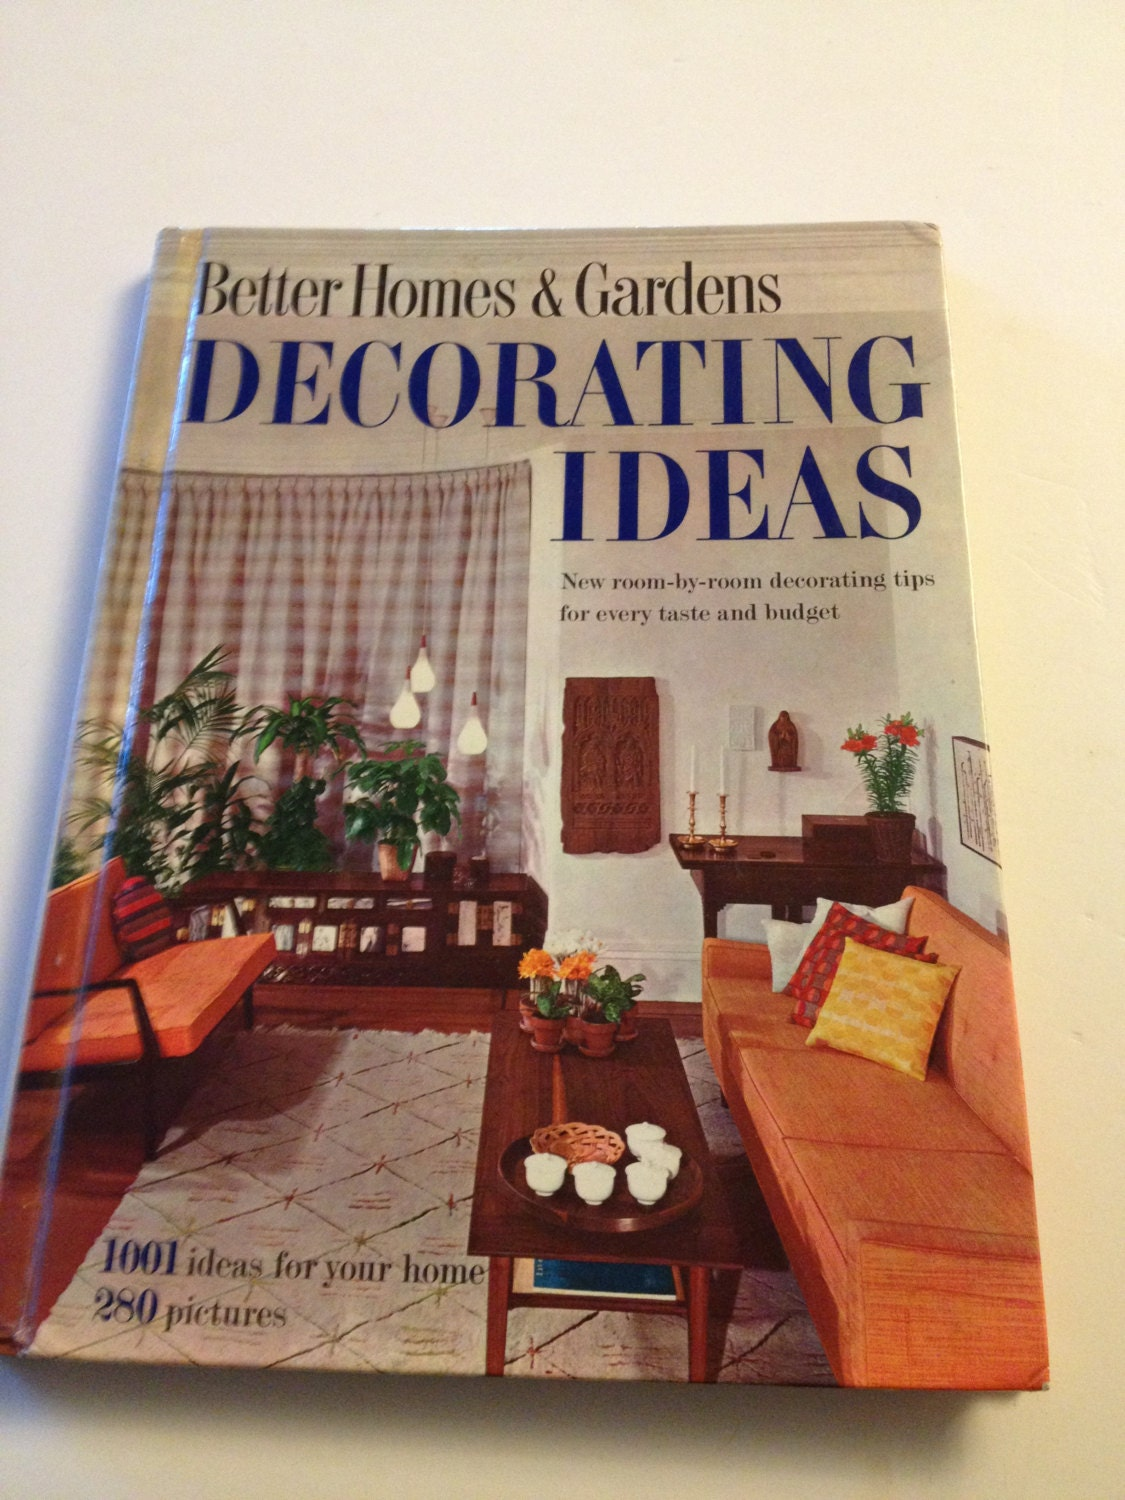 1960 better homes and gardens decorating ideas by stylishjunque - Better homes and gardens decorating ideas ...